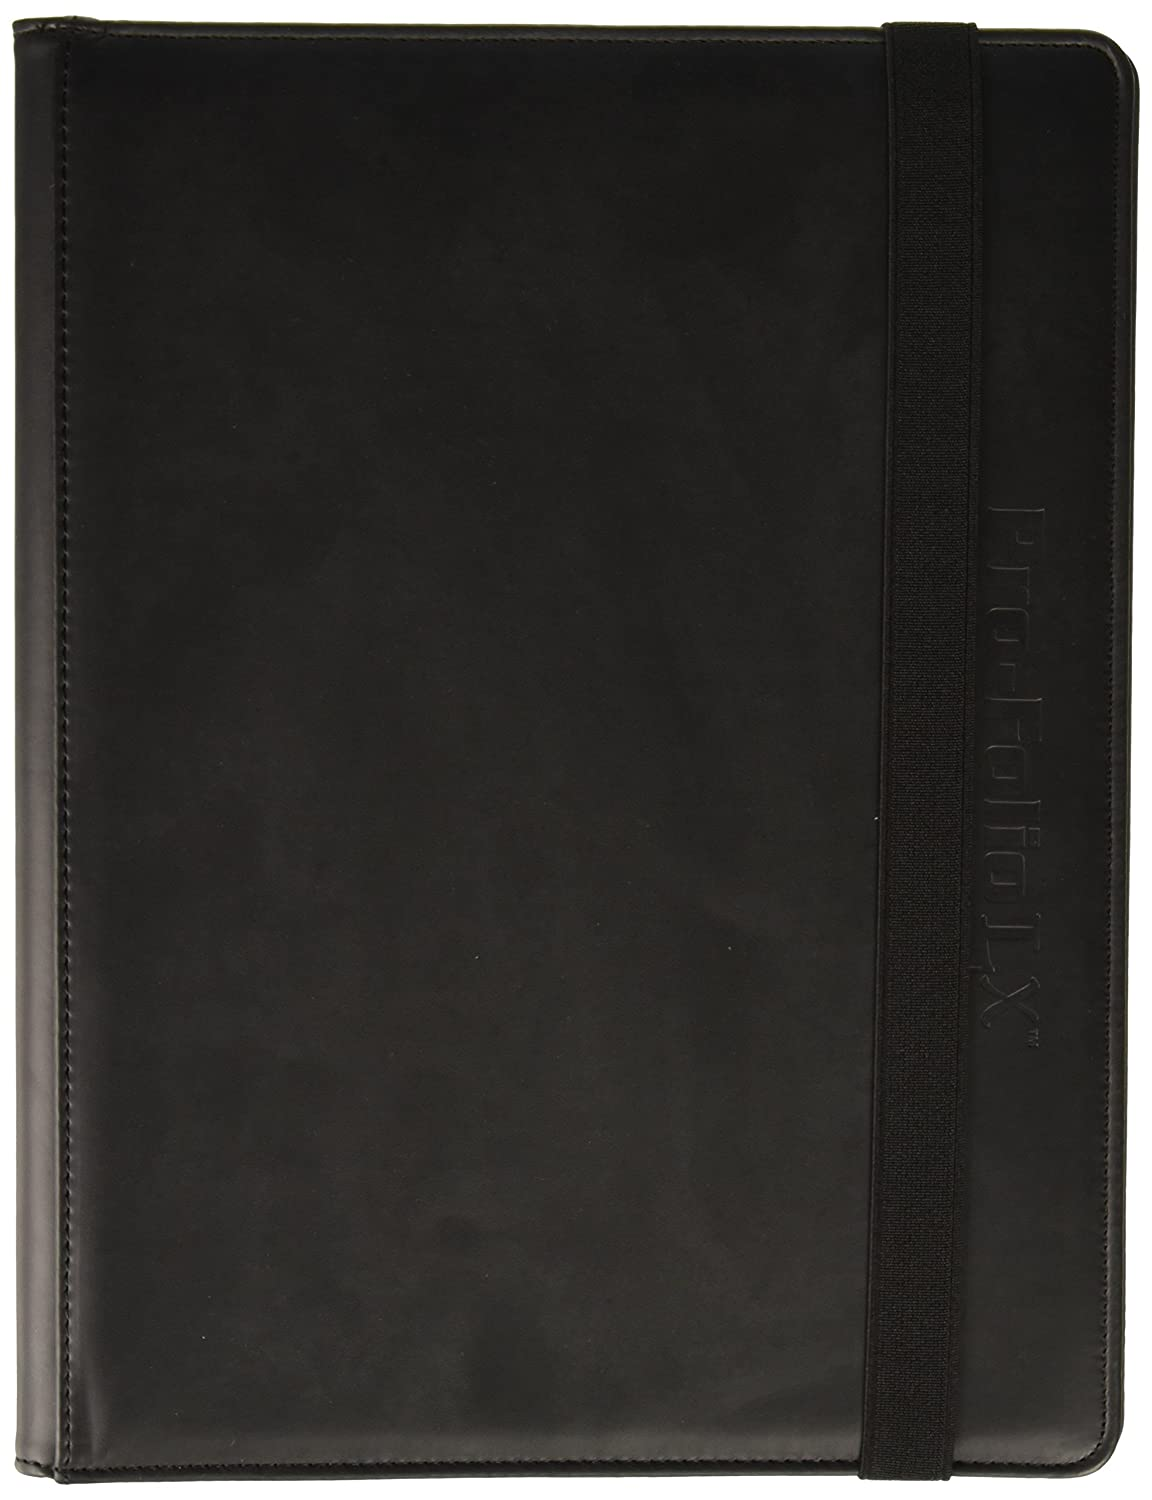 Pro-Folio 9-Pocket LX Album, Black Flat River Group 1-PF9LX-BLK